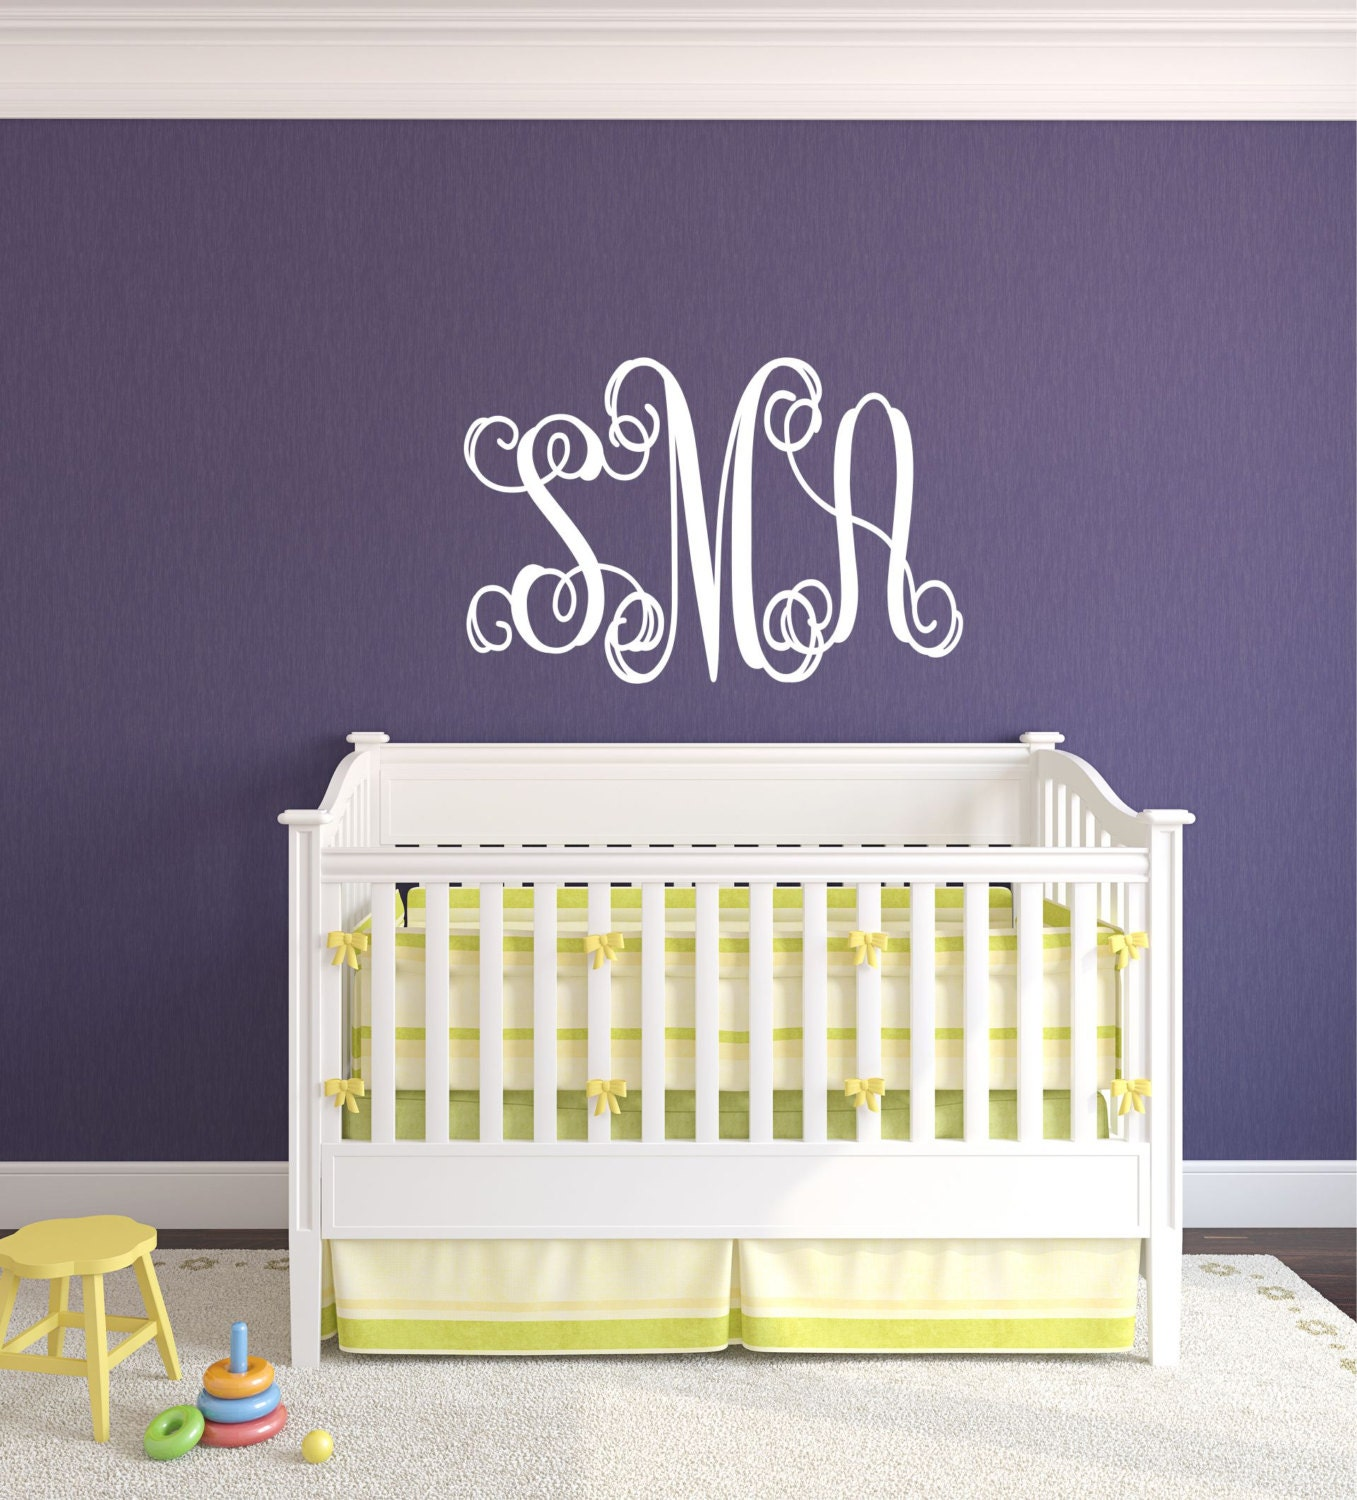 monogram decal bedroom decor name wall decal teen by lucylews. Black Bedroom Furniture Sets. Home Design Ideas